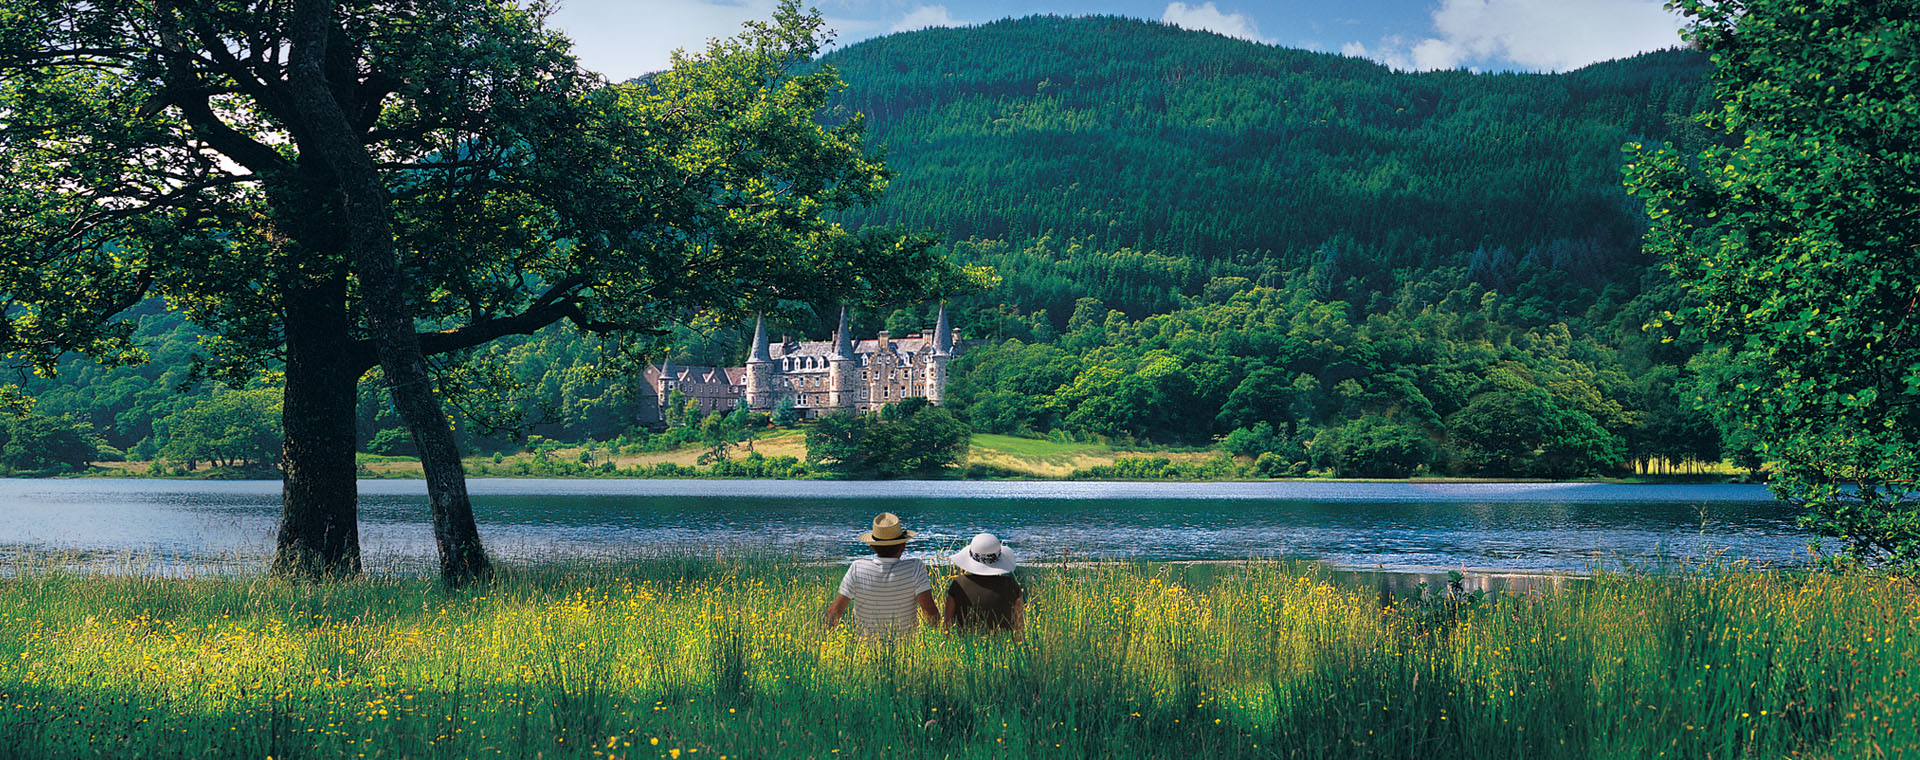 View of Tigh Mor Trossachs in Scotland